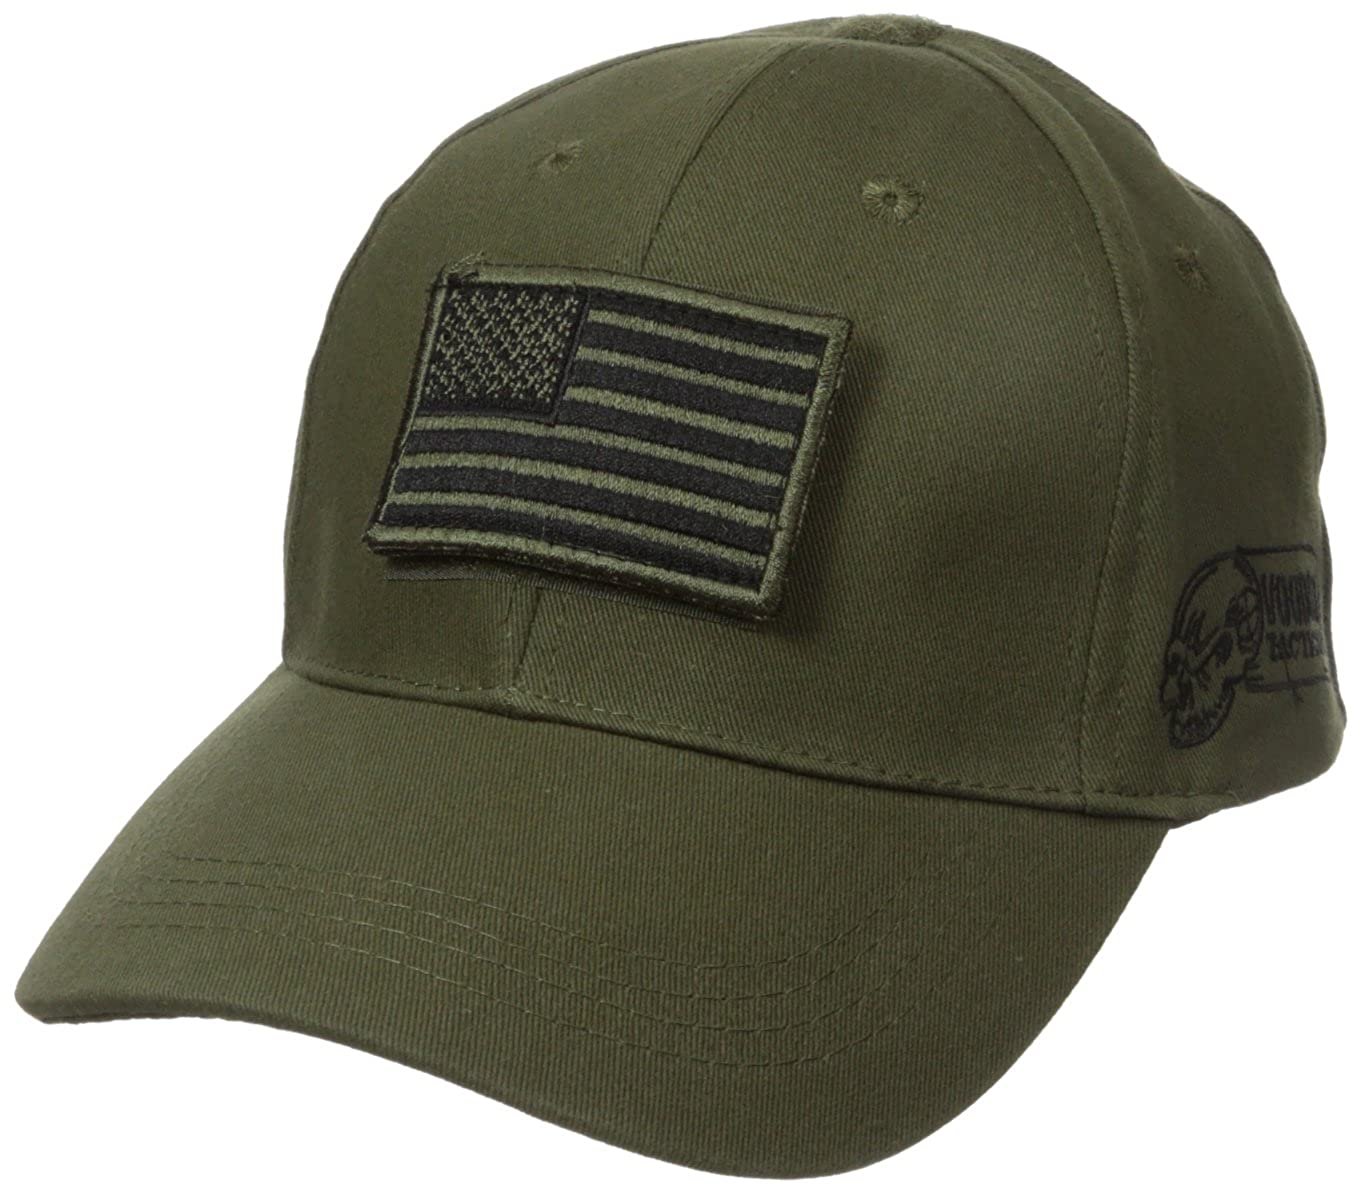 Amazon.com  VooDoo Tactical Voodoo Cap With Removable Flag Patch (Black)  Voodoo Cap With Removable Flag Patch (Black) d7b5c0cee3a